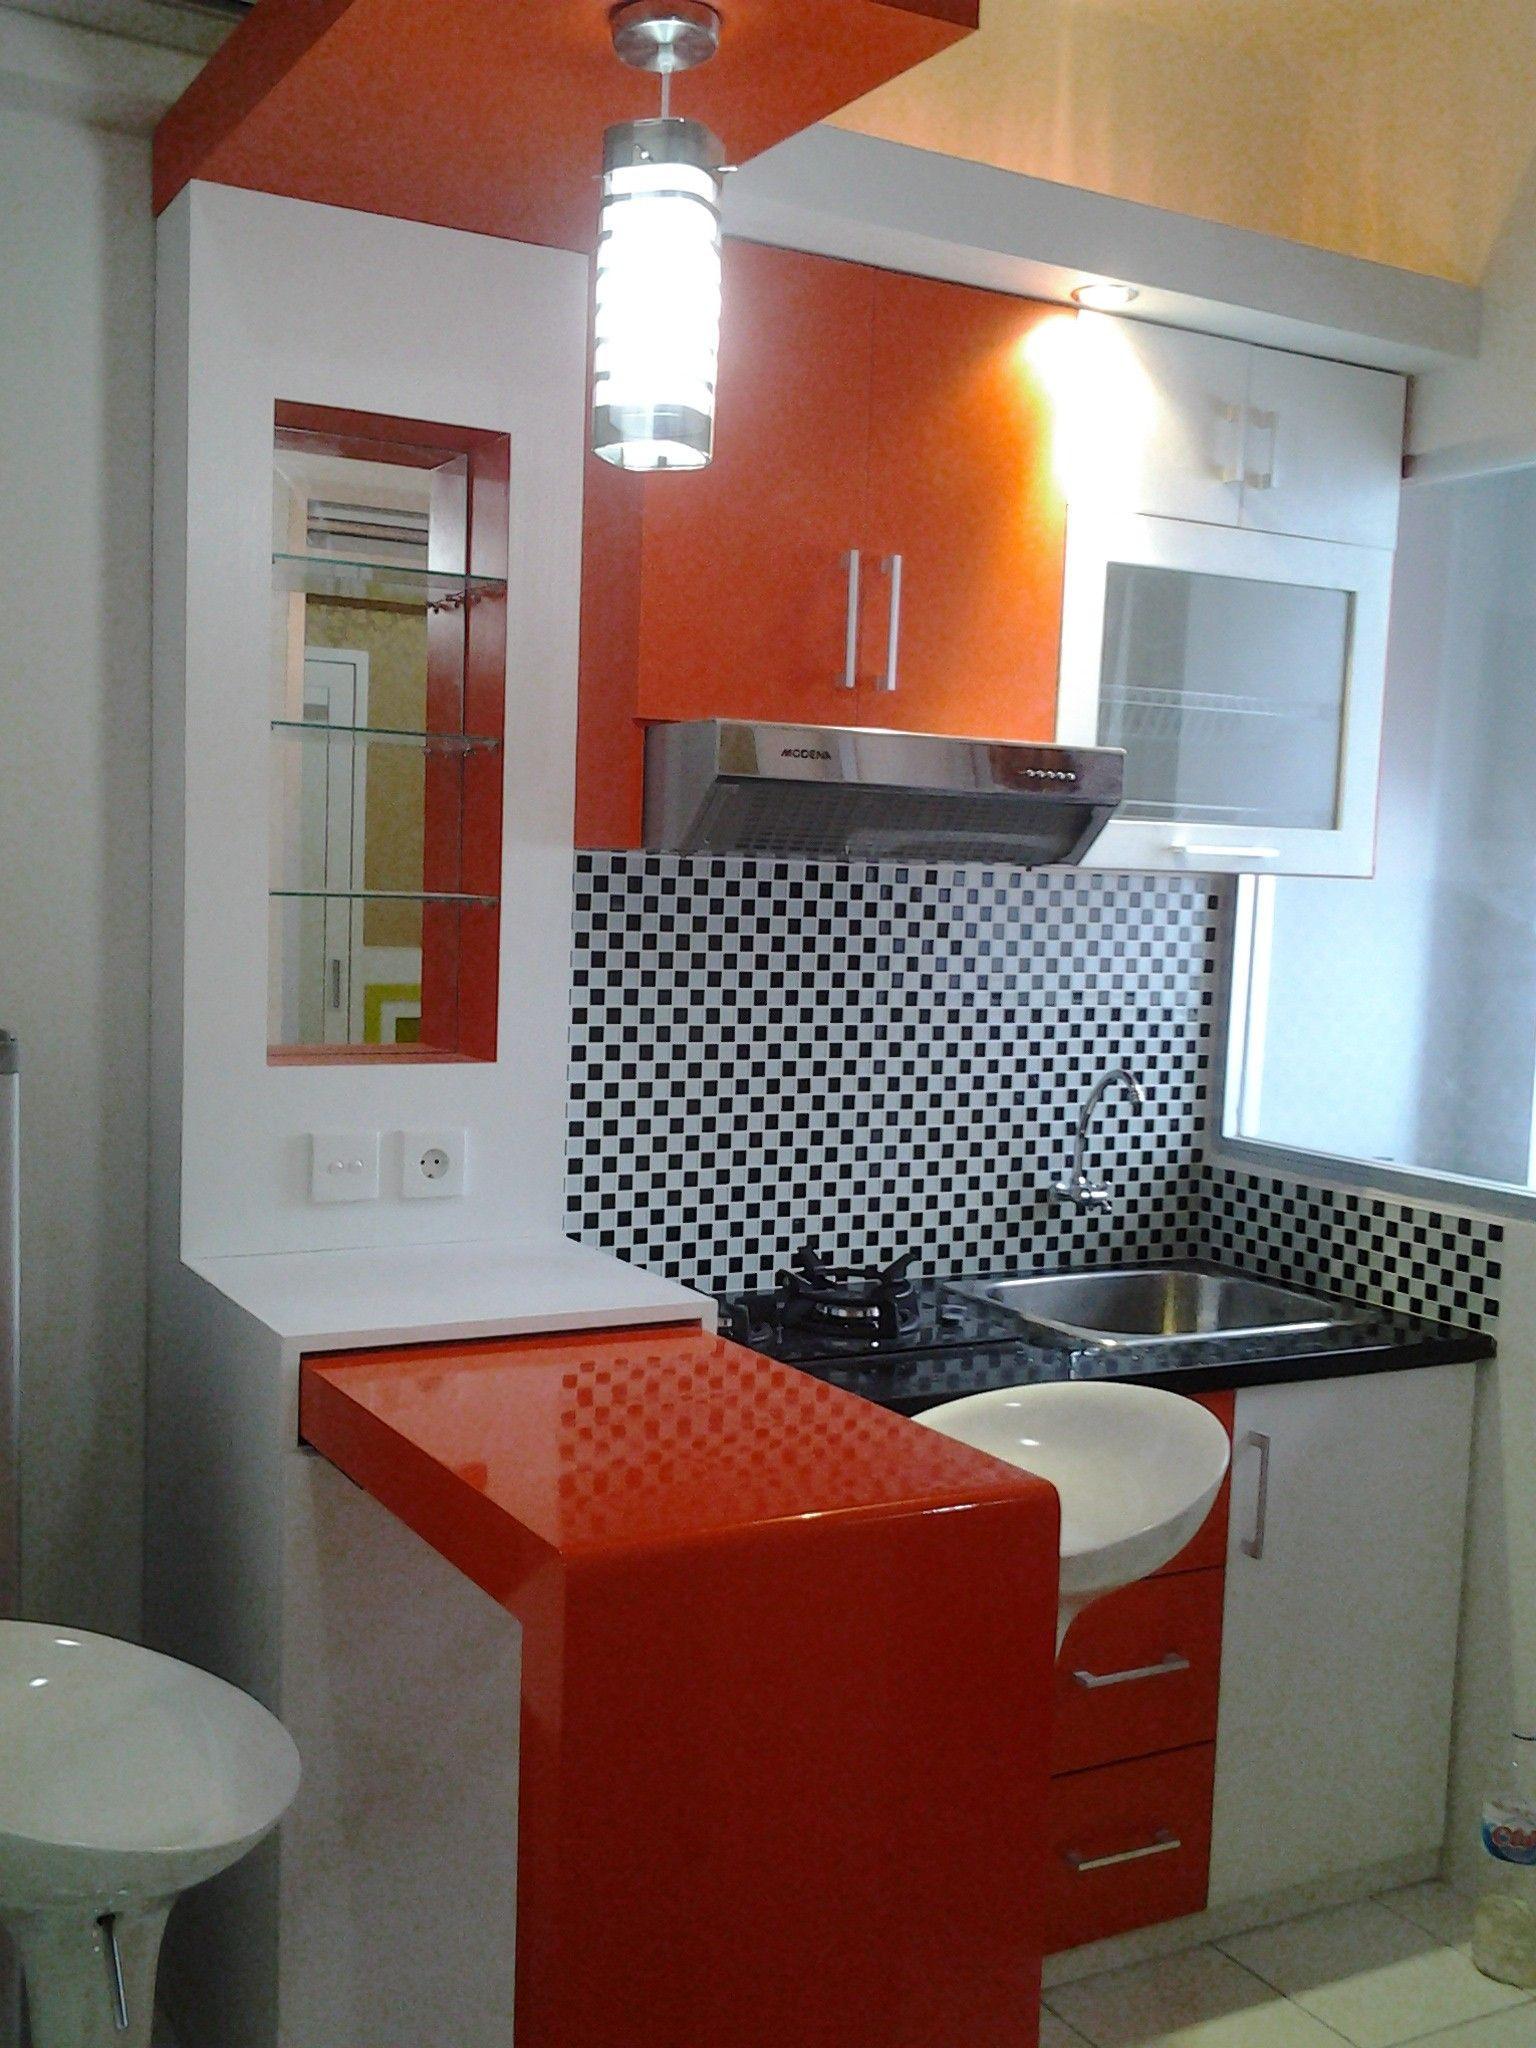 Kitchen set minimalis hub 0817351851 for Design kitchen set minimalis